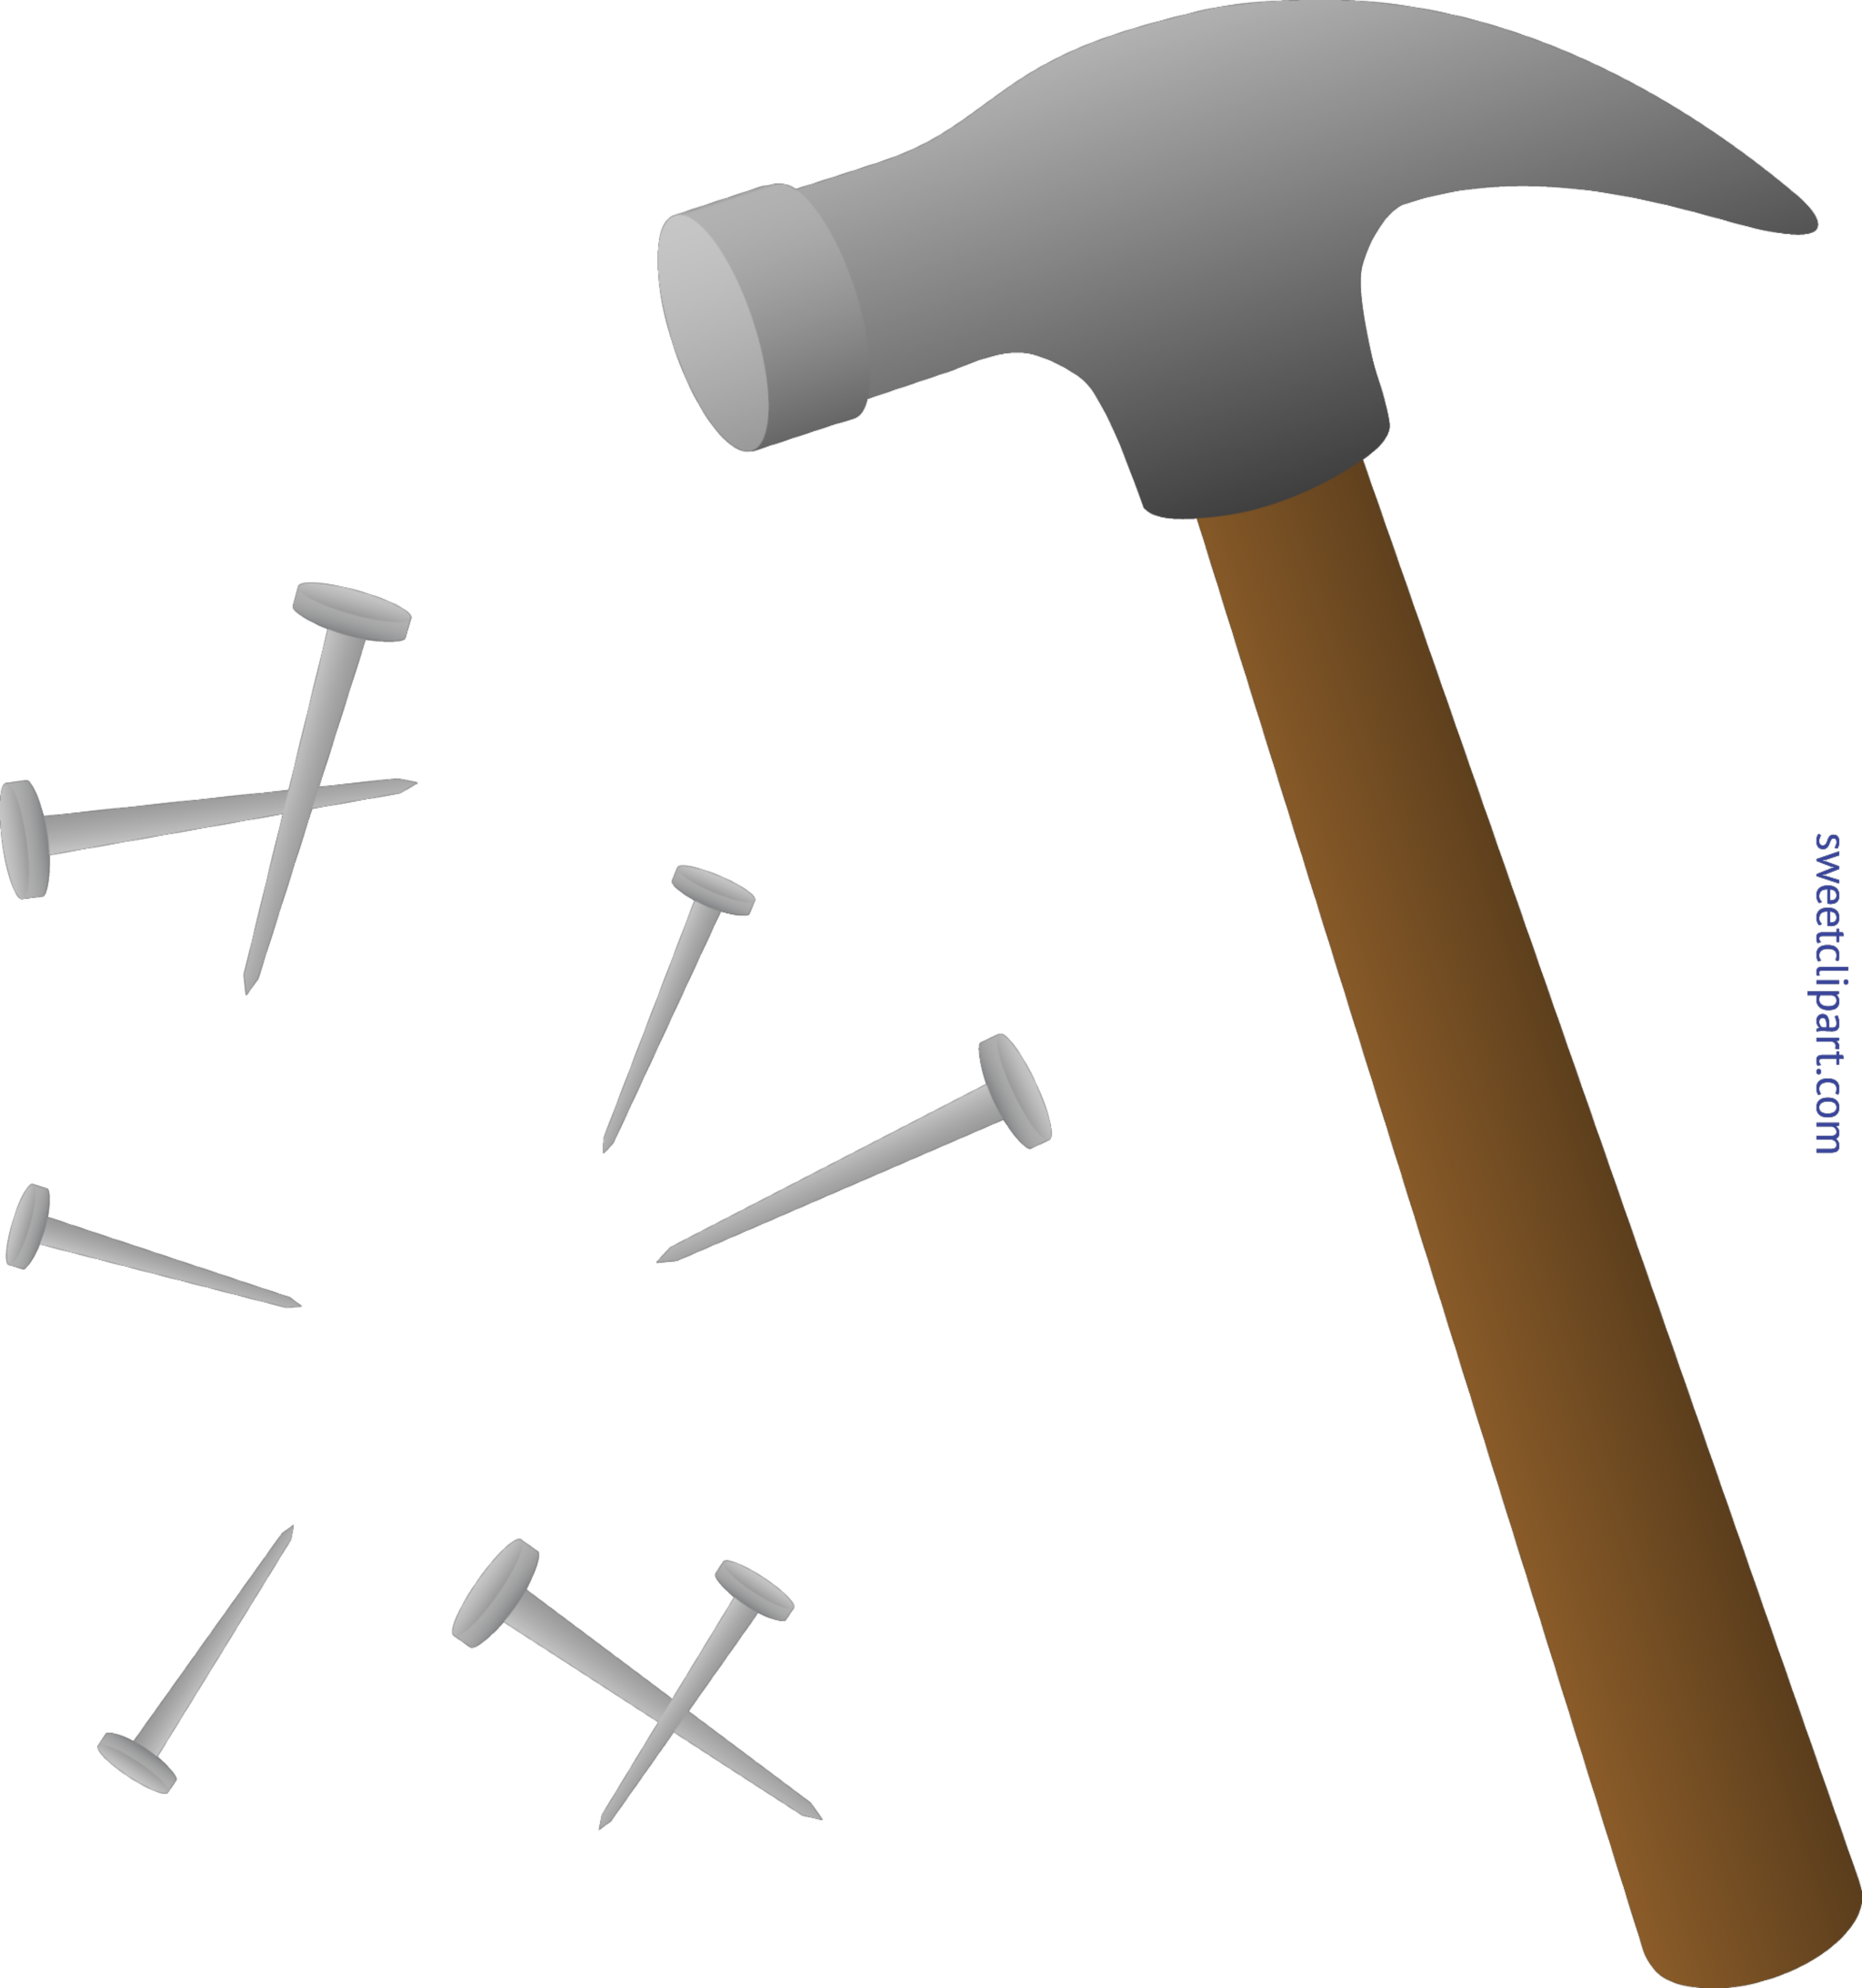 hammer clipart at getdrawings com free for personal use hammer rh getdrawings com hamster clipart images hummer clip art